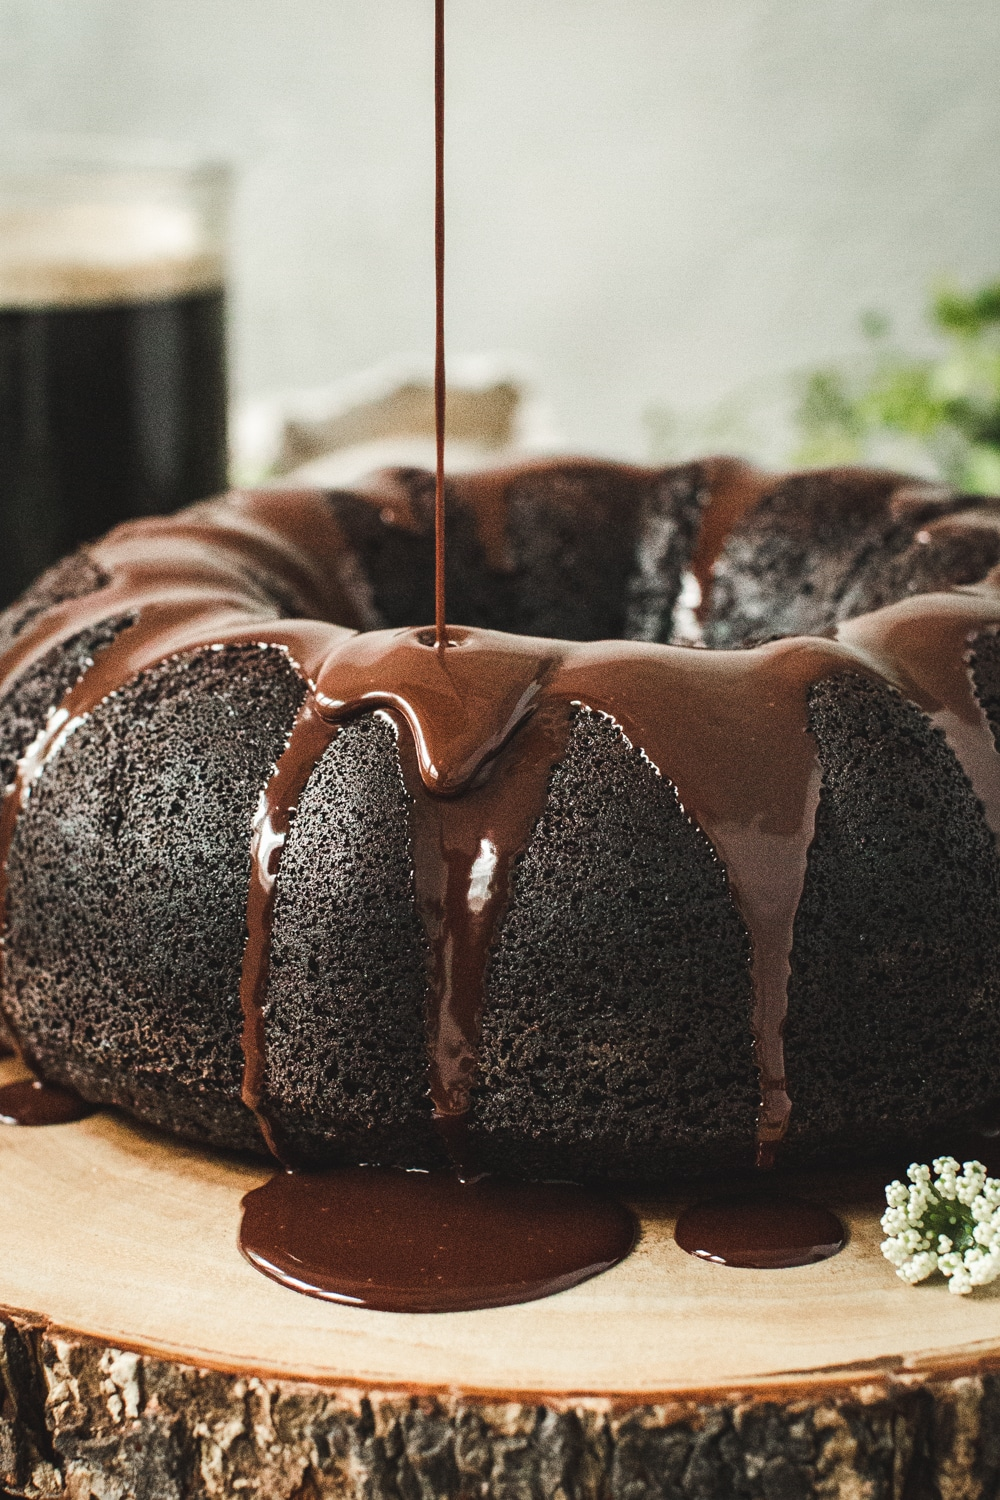 Chocolate ganache dripping down side of chocolate bundt cake.